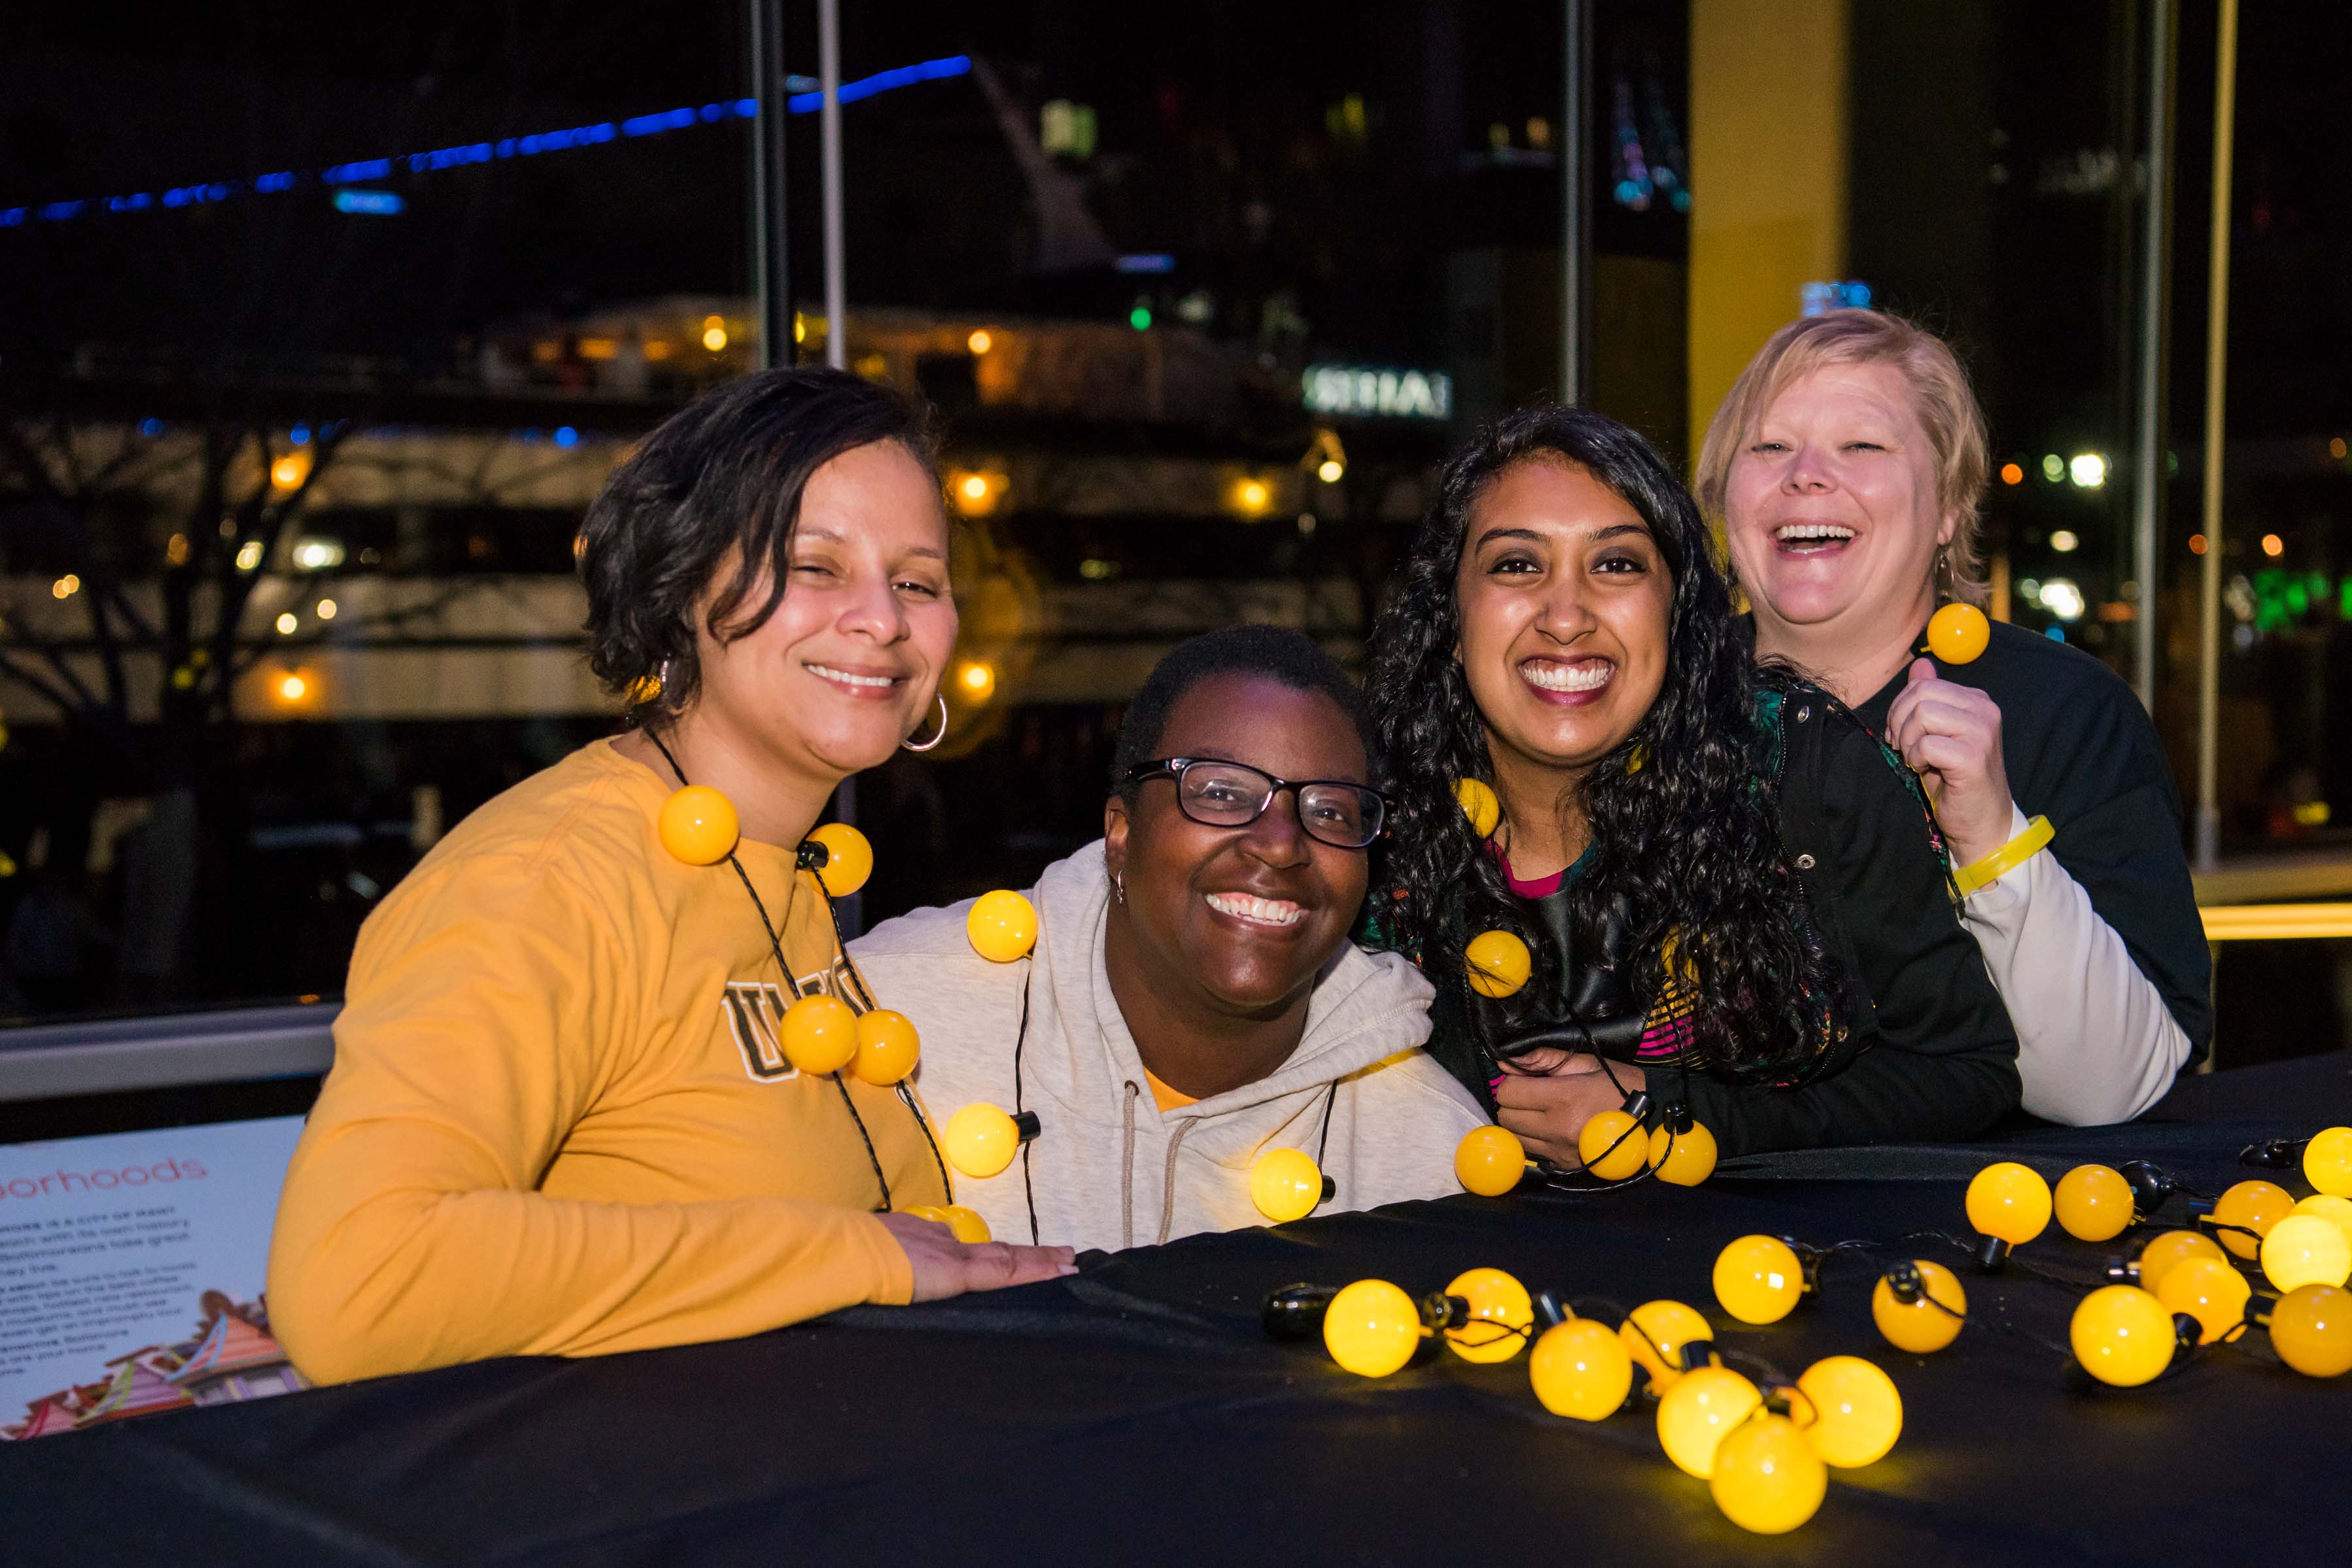 Group of four women pose together behind table at pier 5 reception